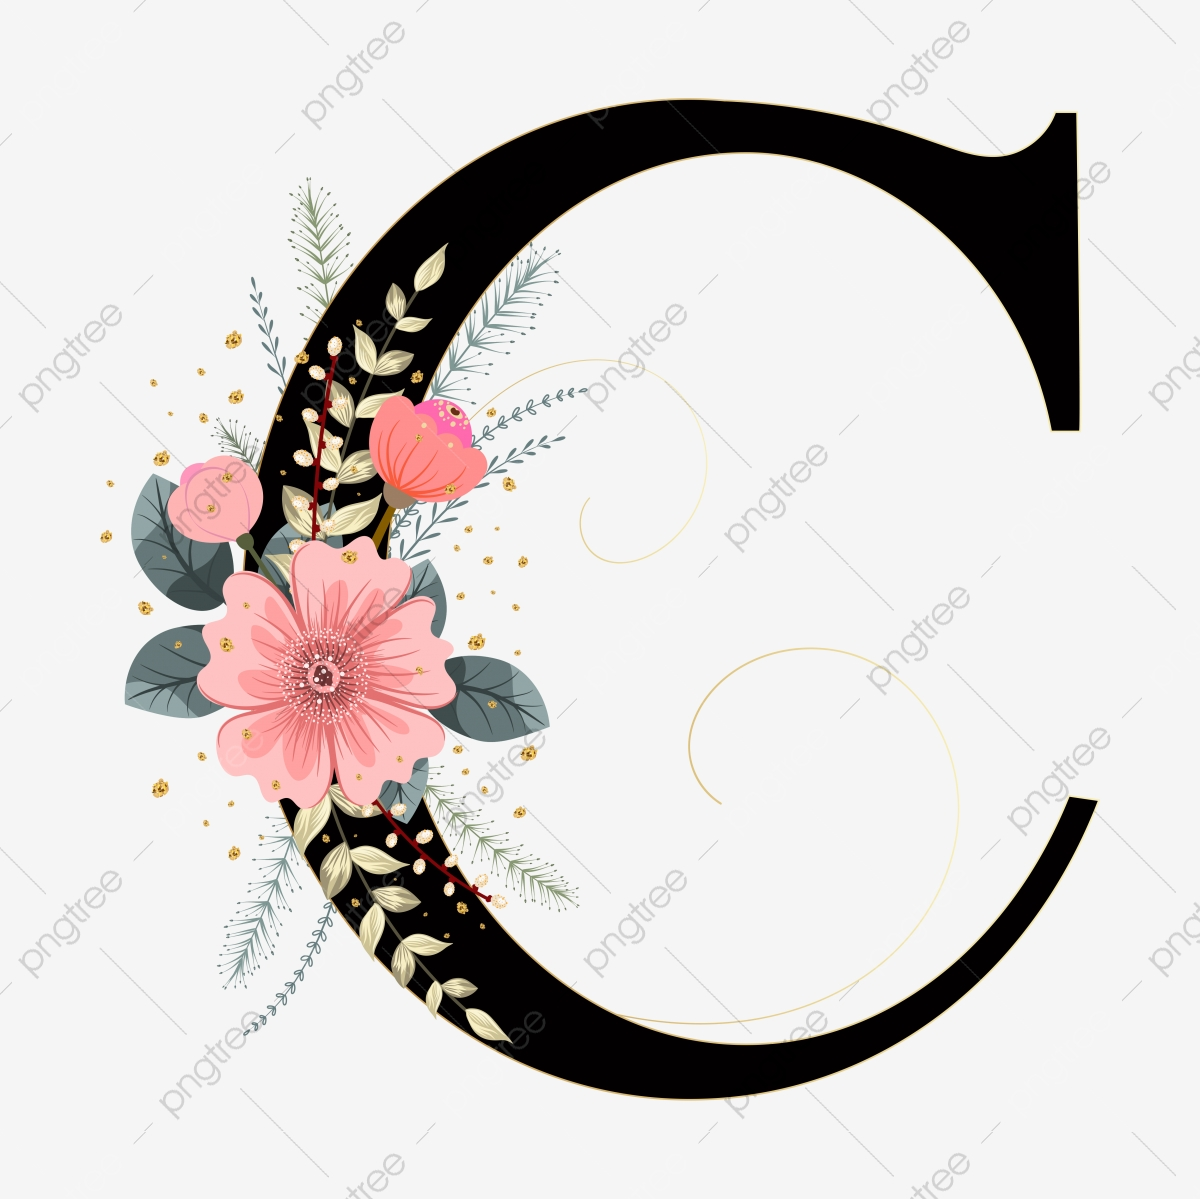 https pngtree com freepng alphabet letter c typography with flowers ornaments and leaves invitation card 5957252 html